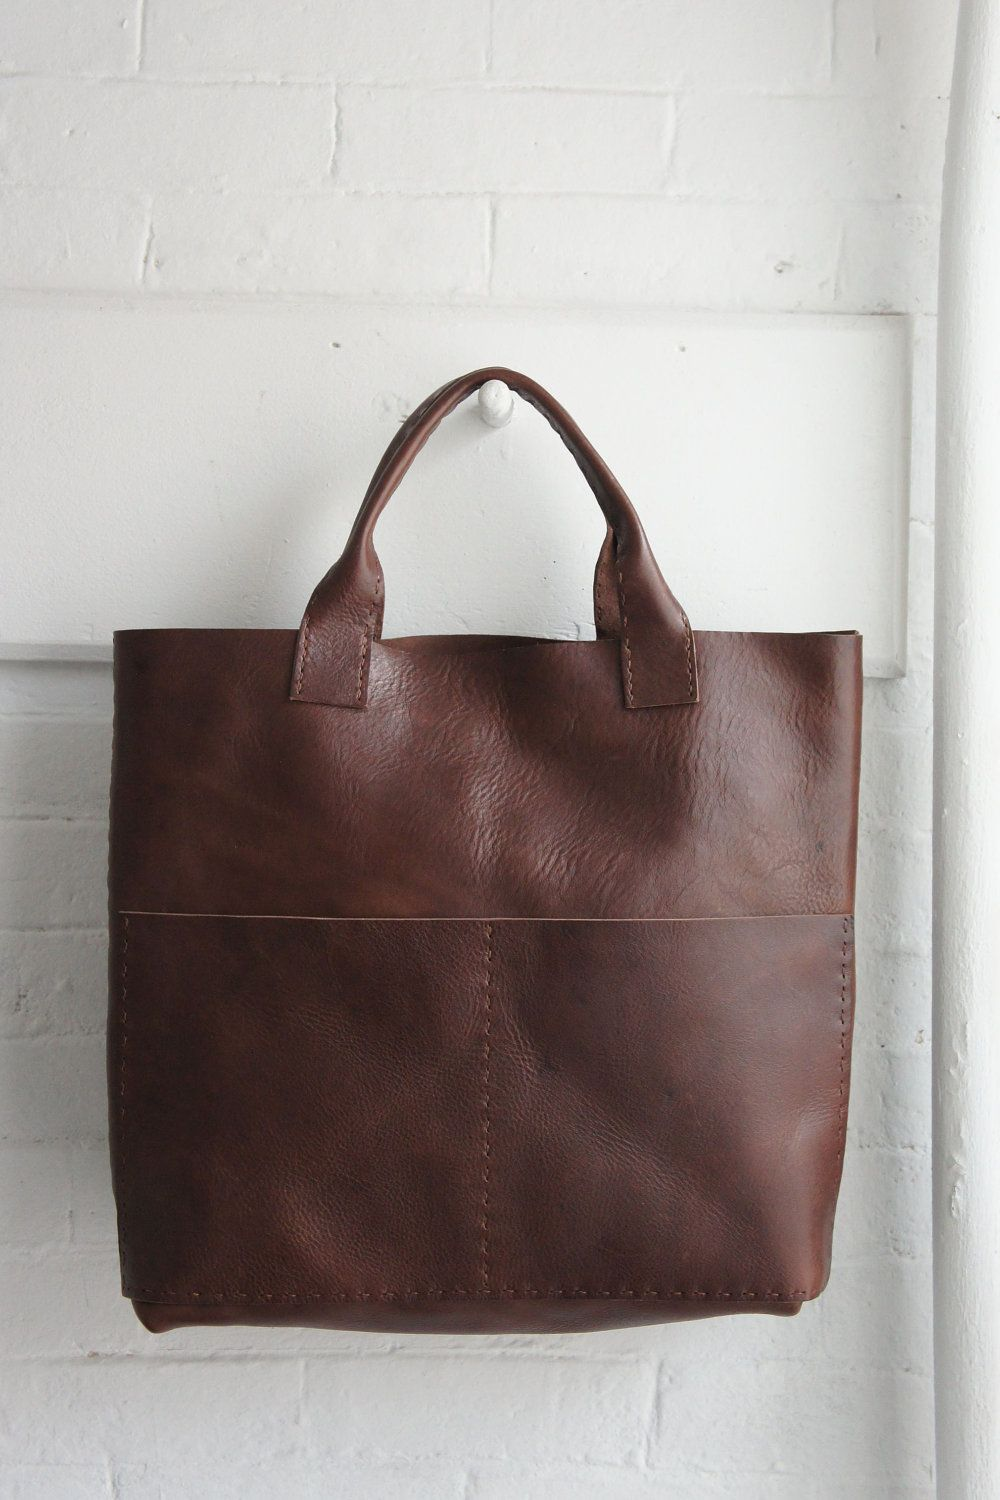 5acaf99527 This makes my heart sing. Add this beautiful leather tote to the ...